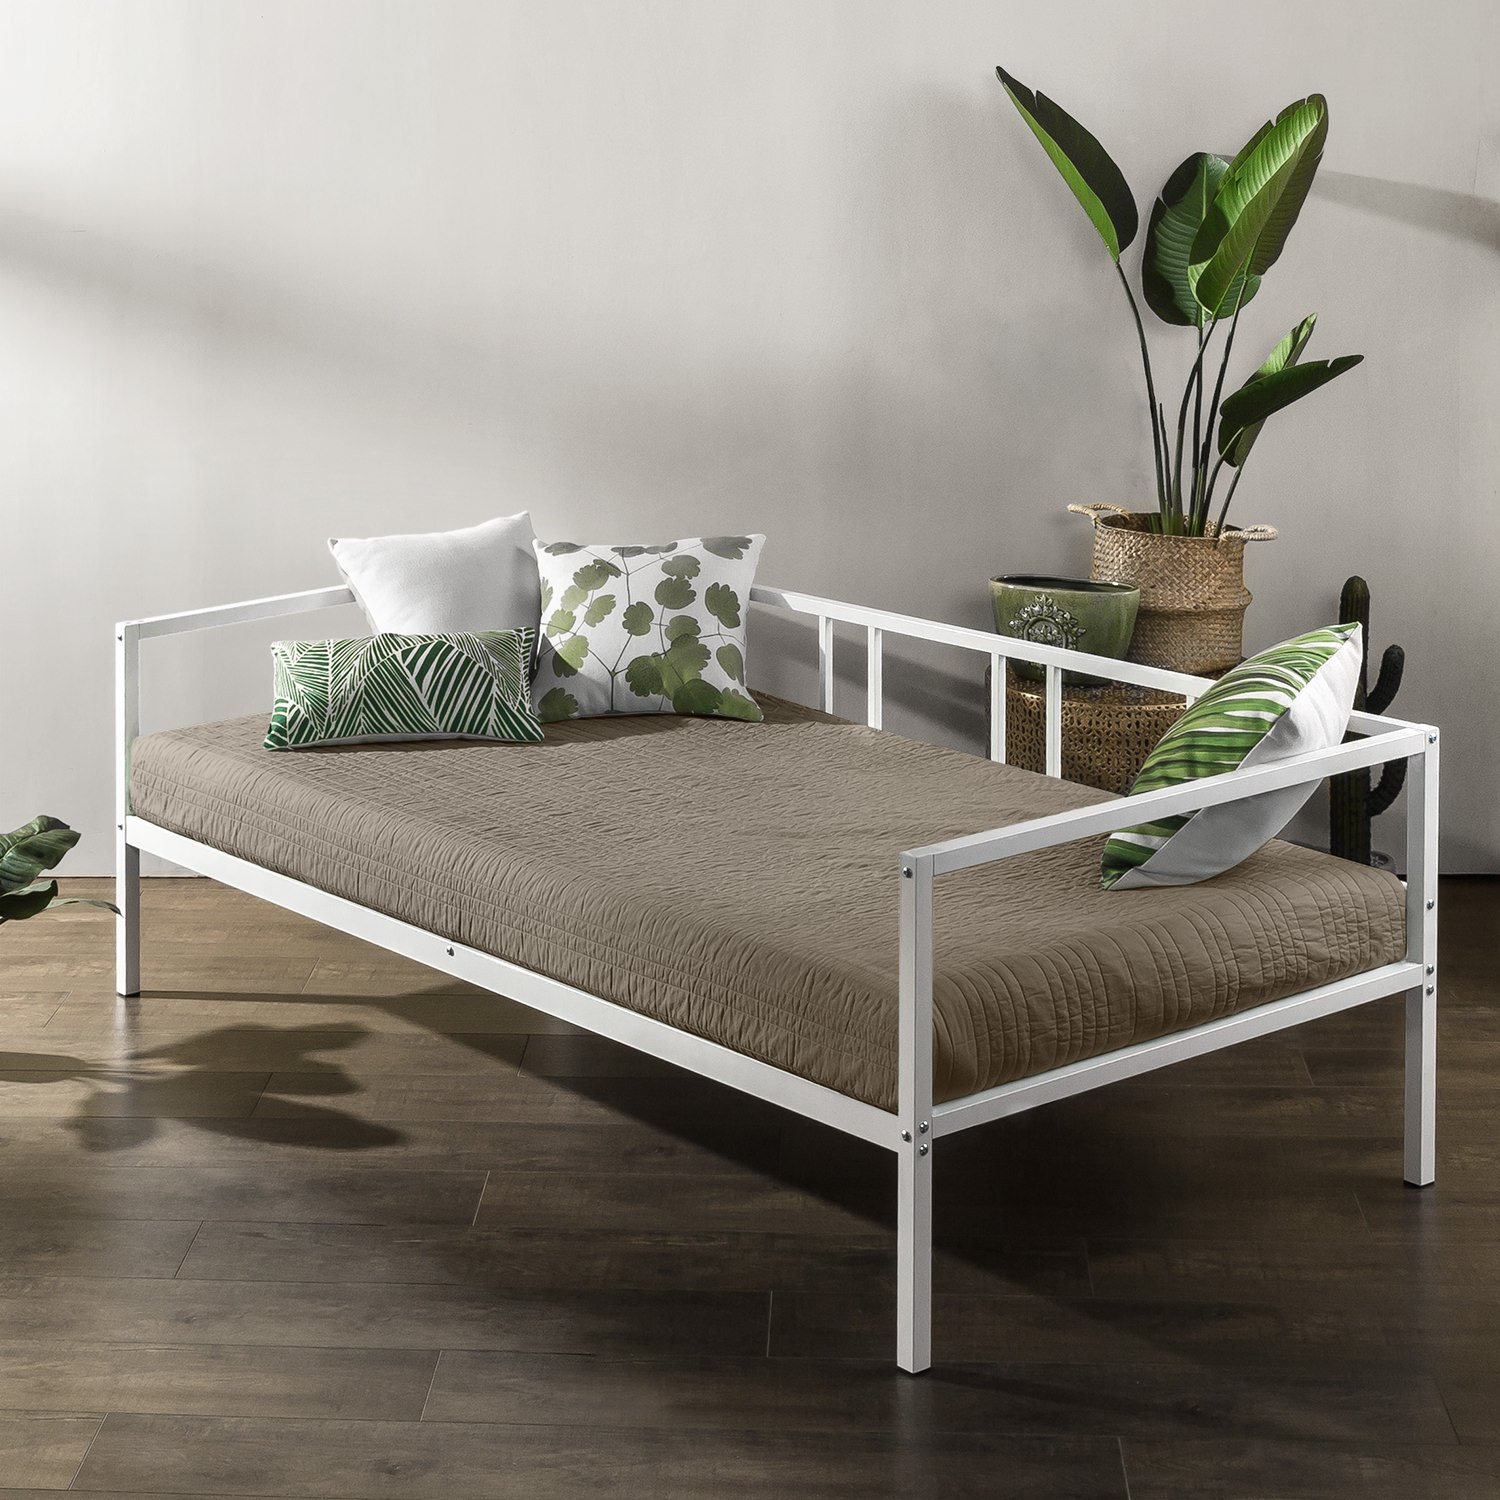 Zinus Gail Morning Mist Twin Daybed Frame / Steel Slat Support by Zinus